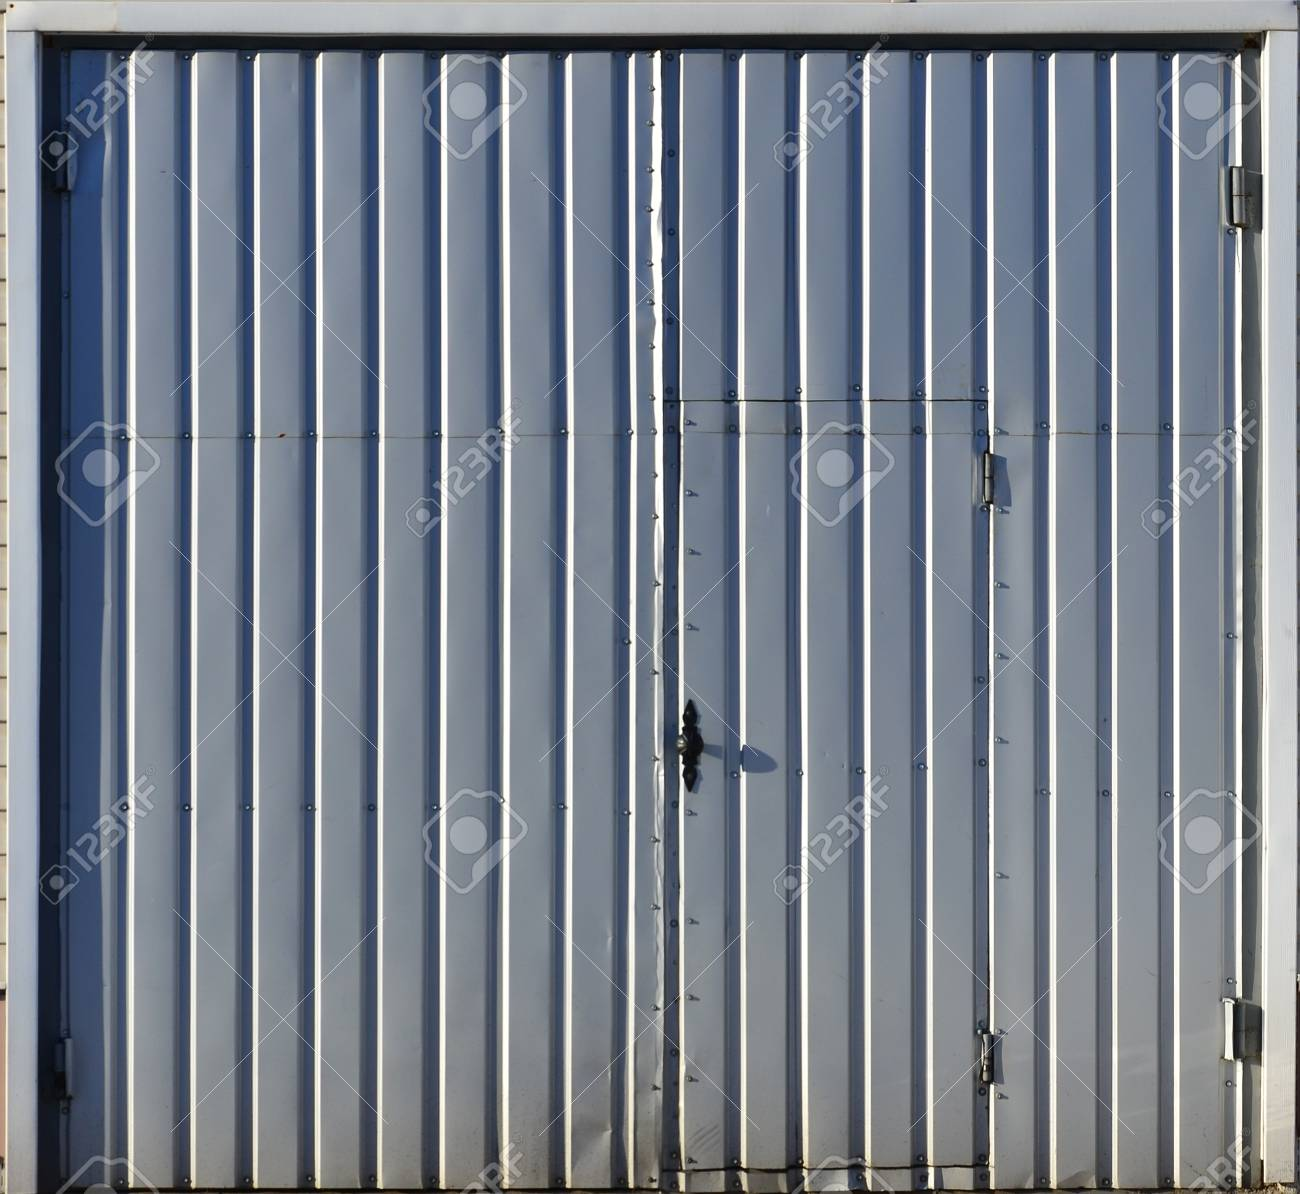 metal door texture. Stock Photo - The Texture Of Brown Corrugated Metal Door With A Colored Frame. Street Gate Iron Sheets, Fortified Small Screws.